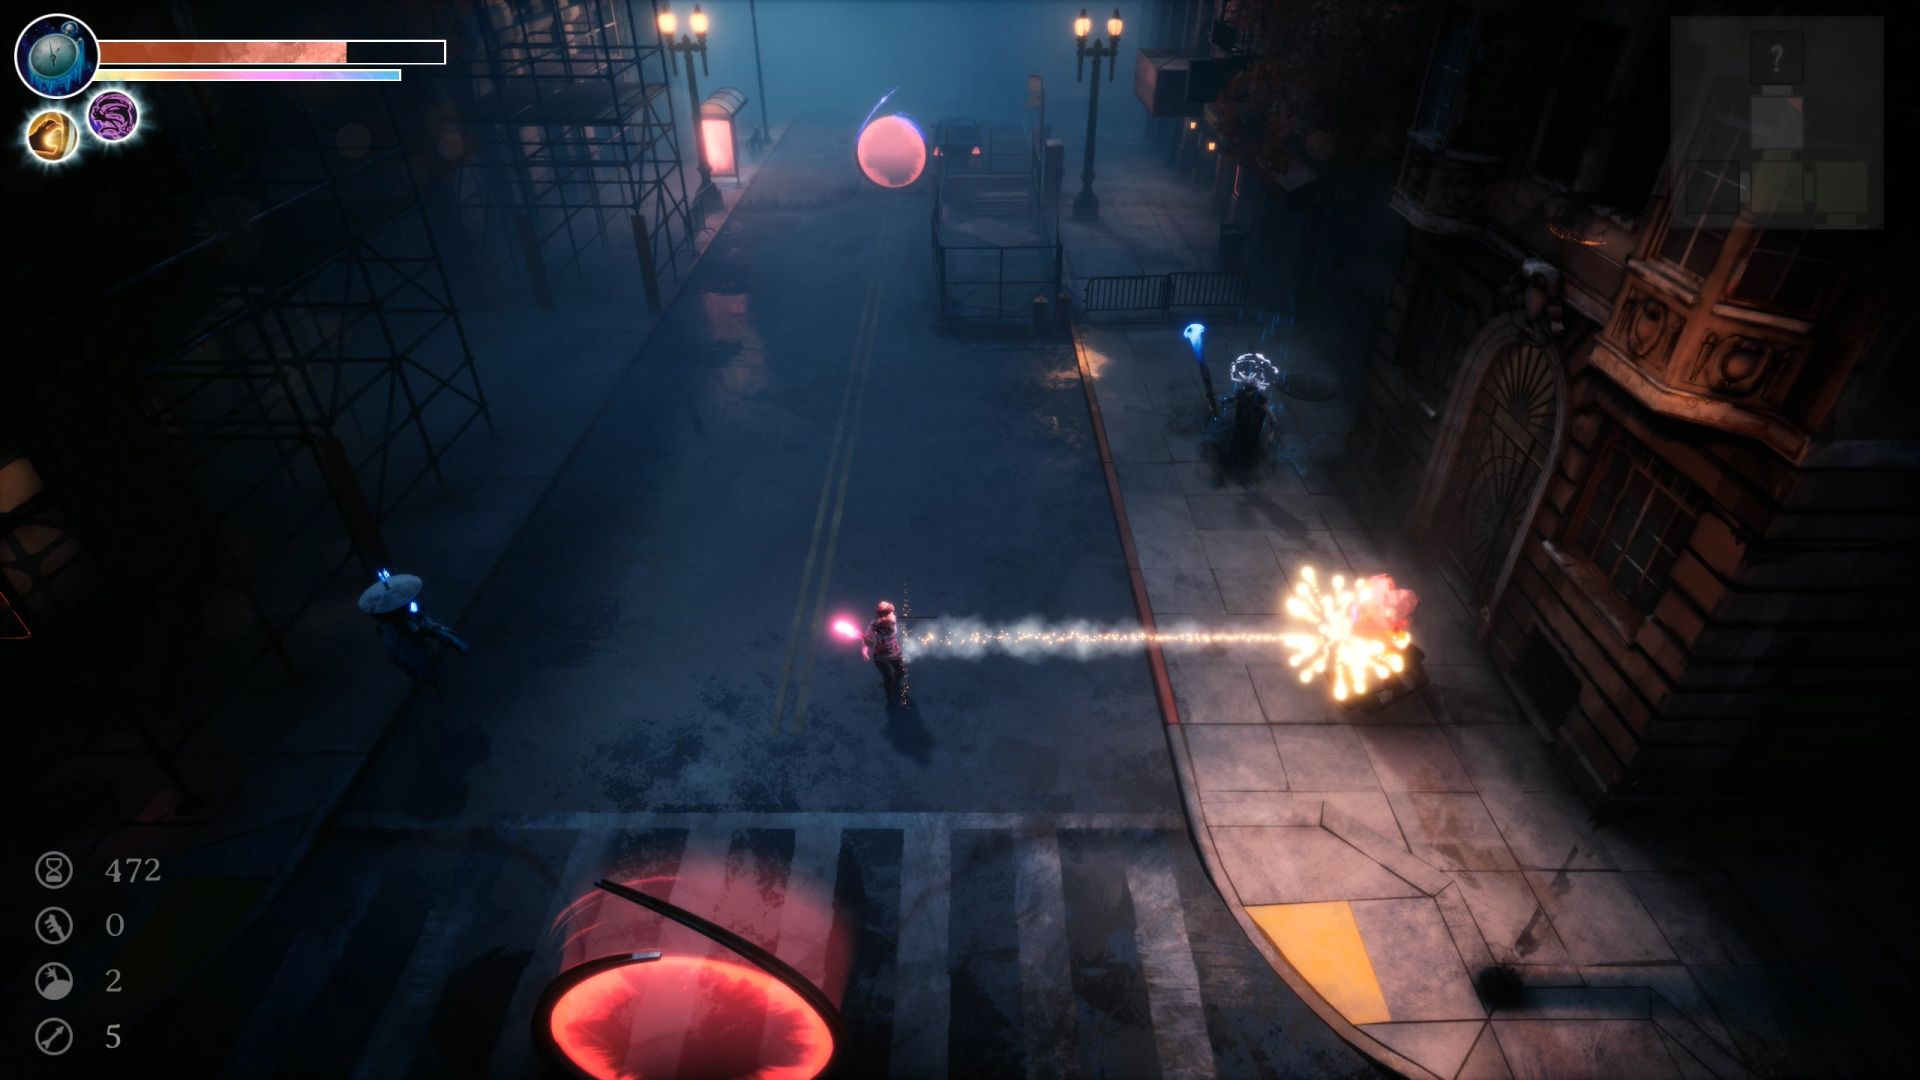 A screenshot of a dark street in Dreamscaper. The player character is has shot a bottlerocket at an enemy, and it has exploded into lots of twinkling lights.